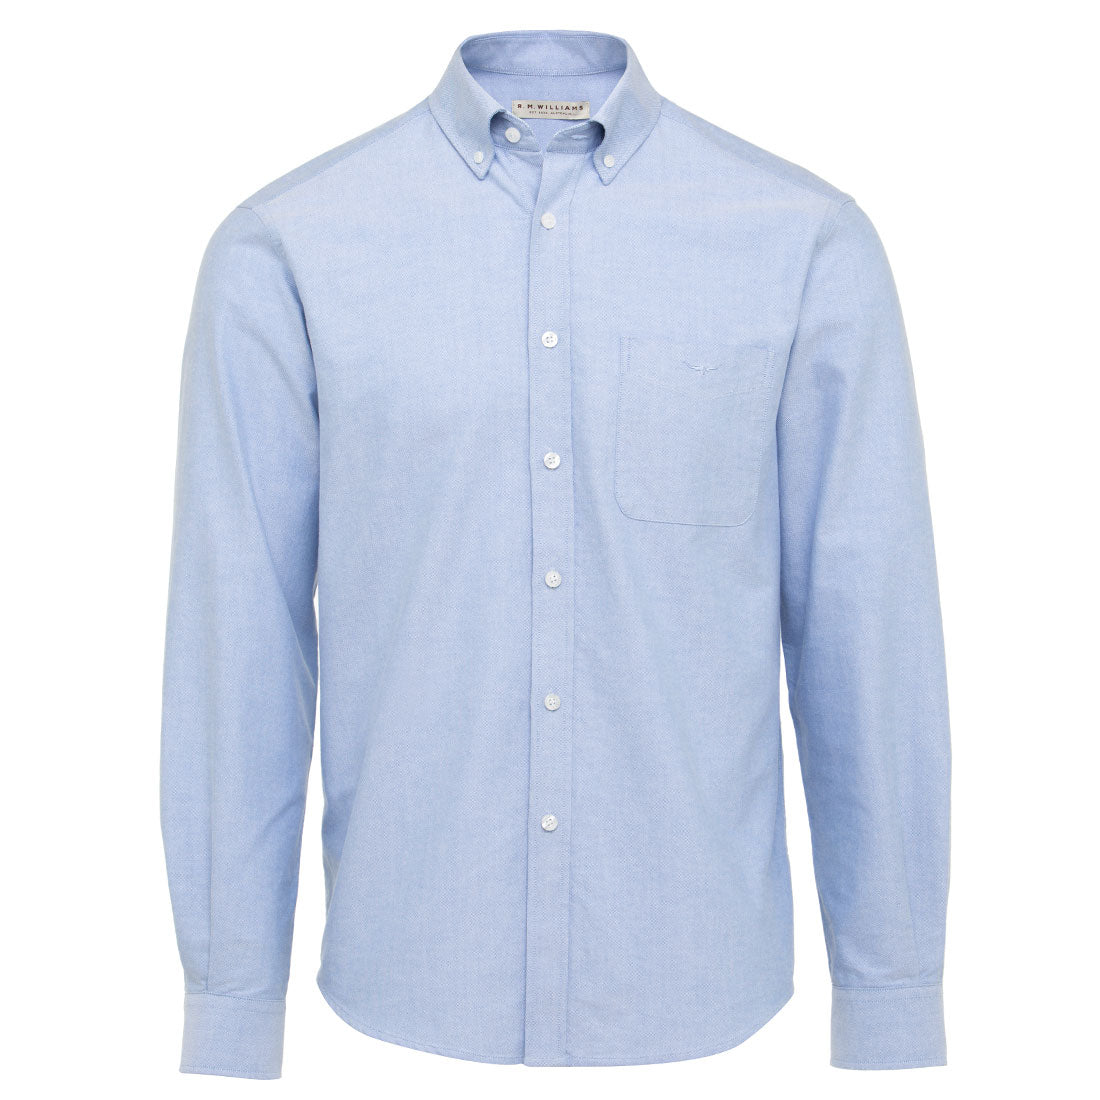 R.M.Williams Collins Shirt Light Blue, Button Down Collar, Big Men